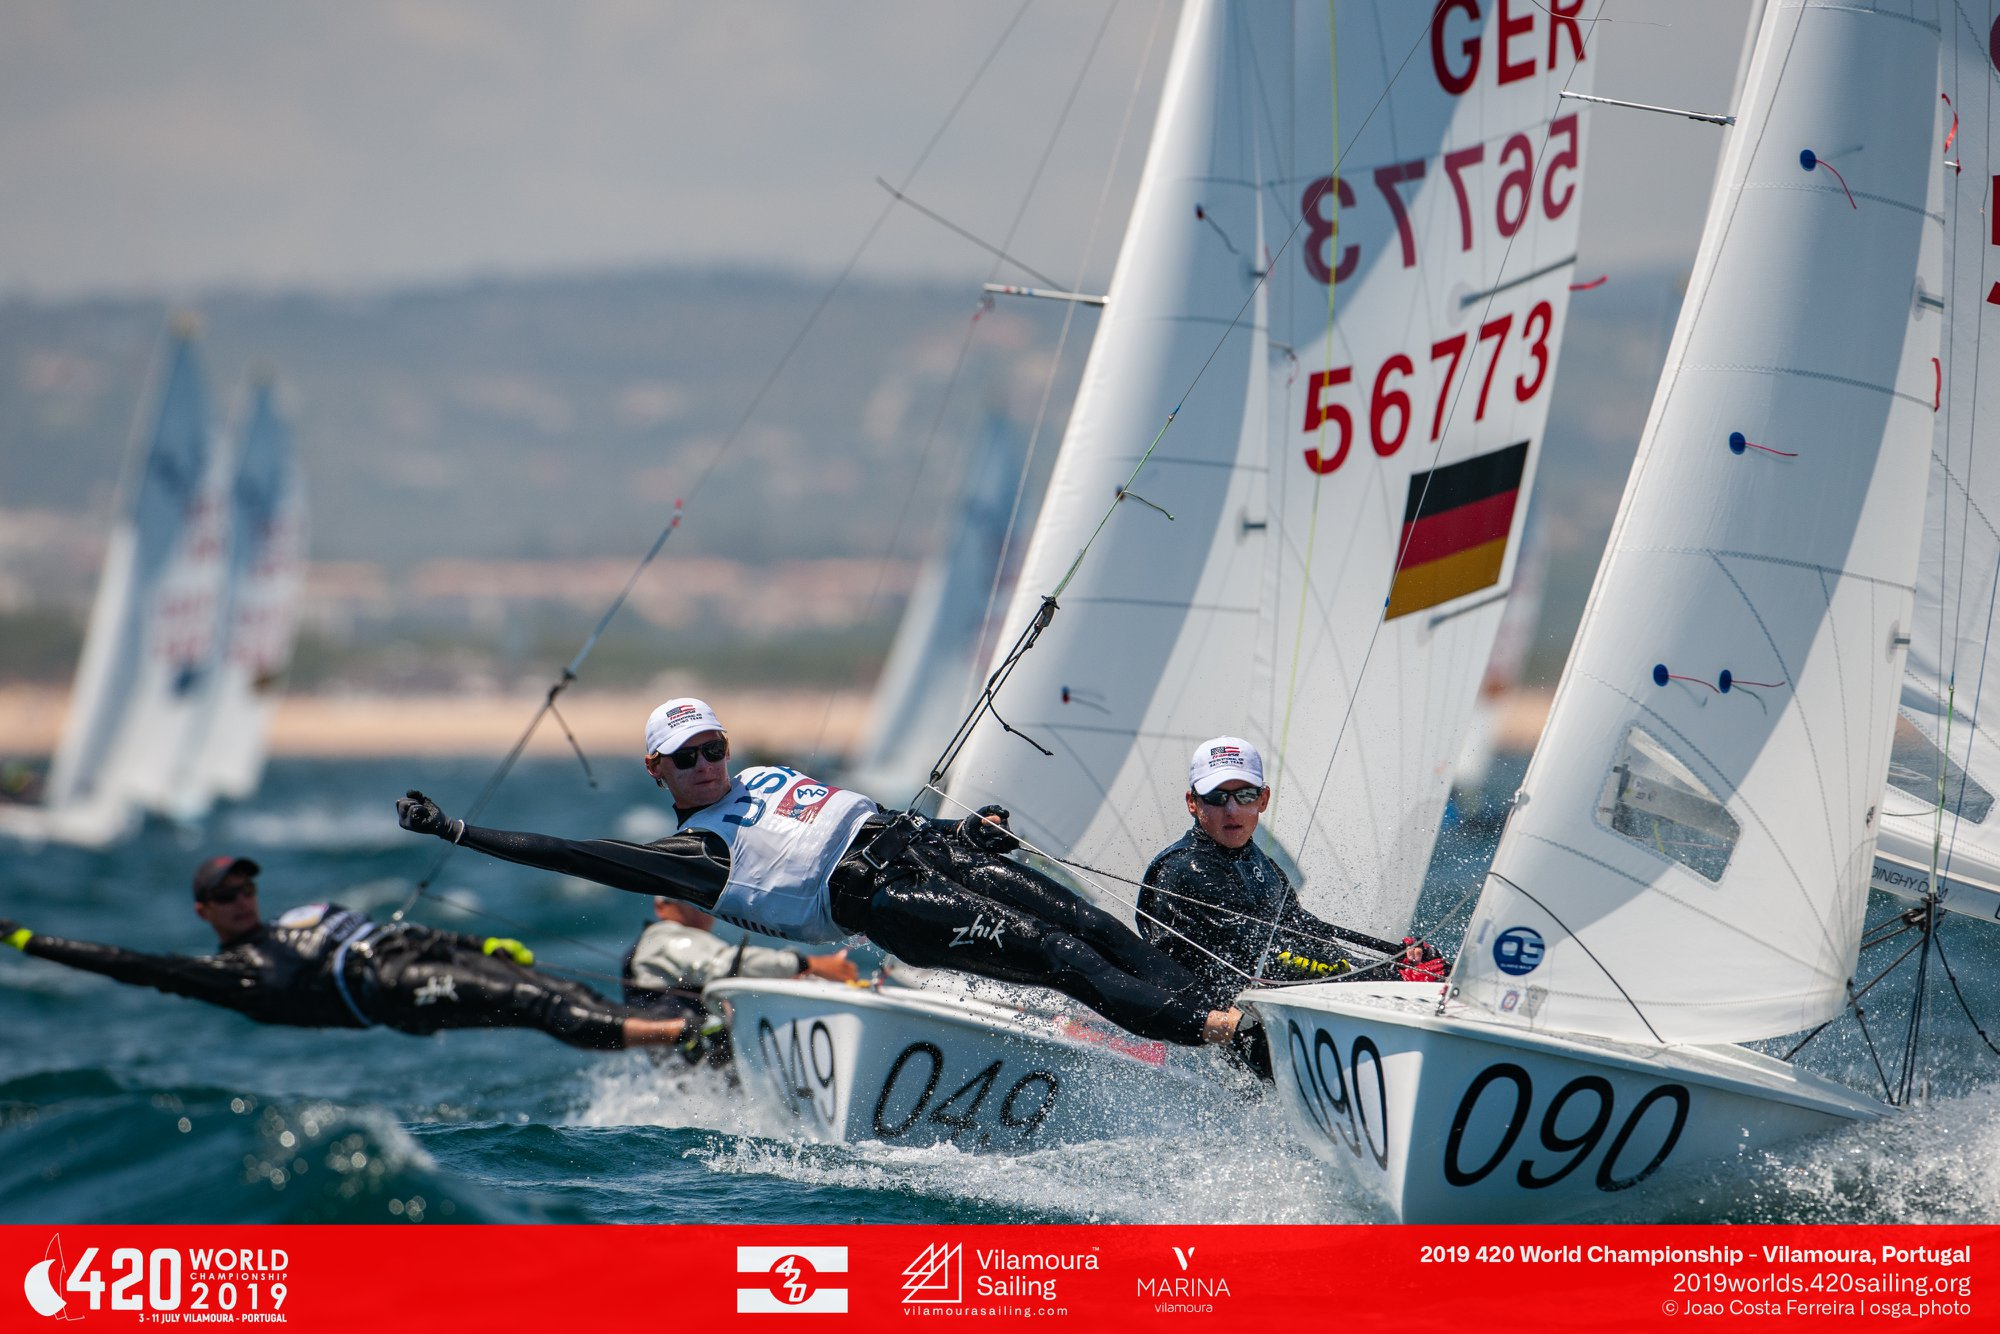 420 - World Championship 2019 - Vilamoura POR - Day 3